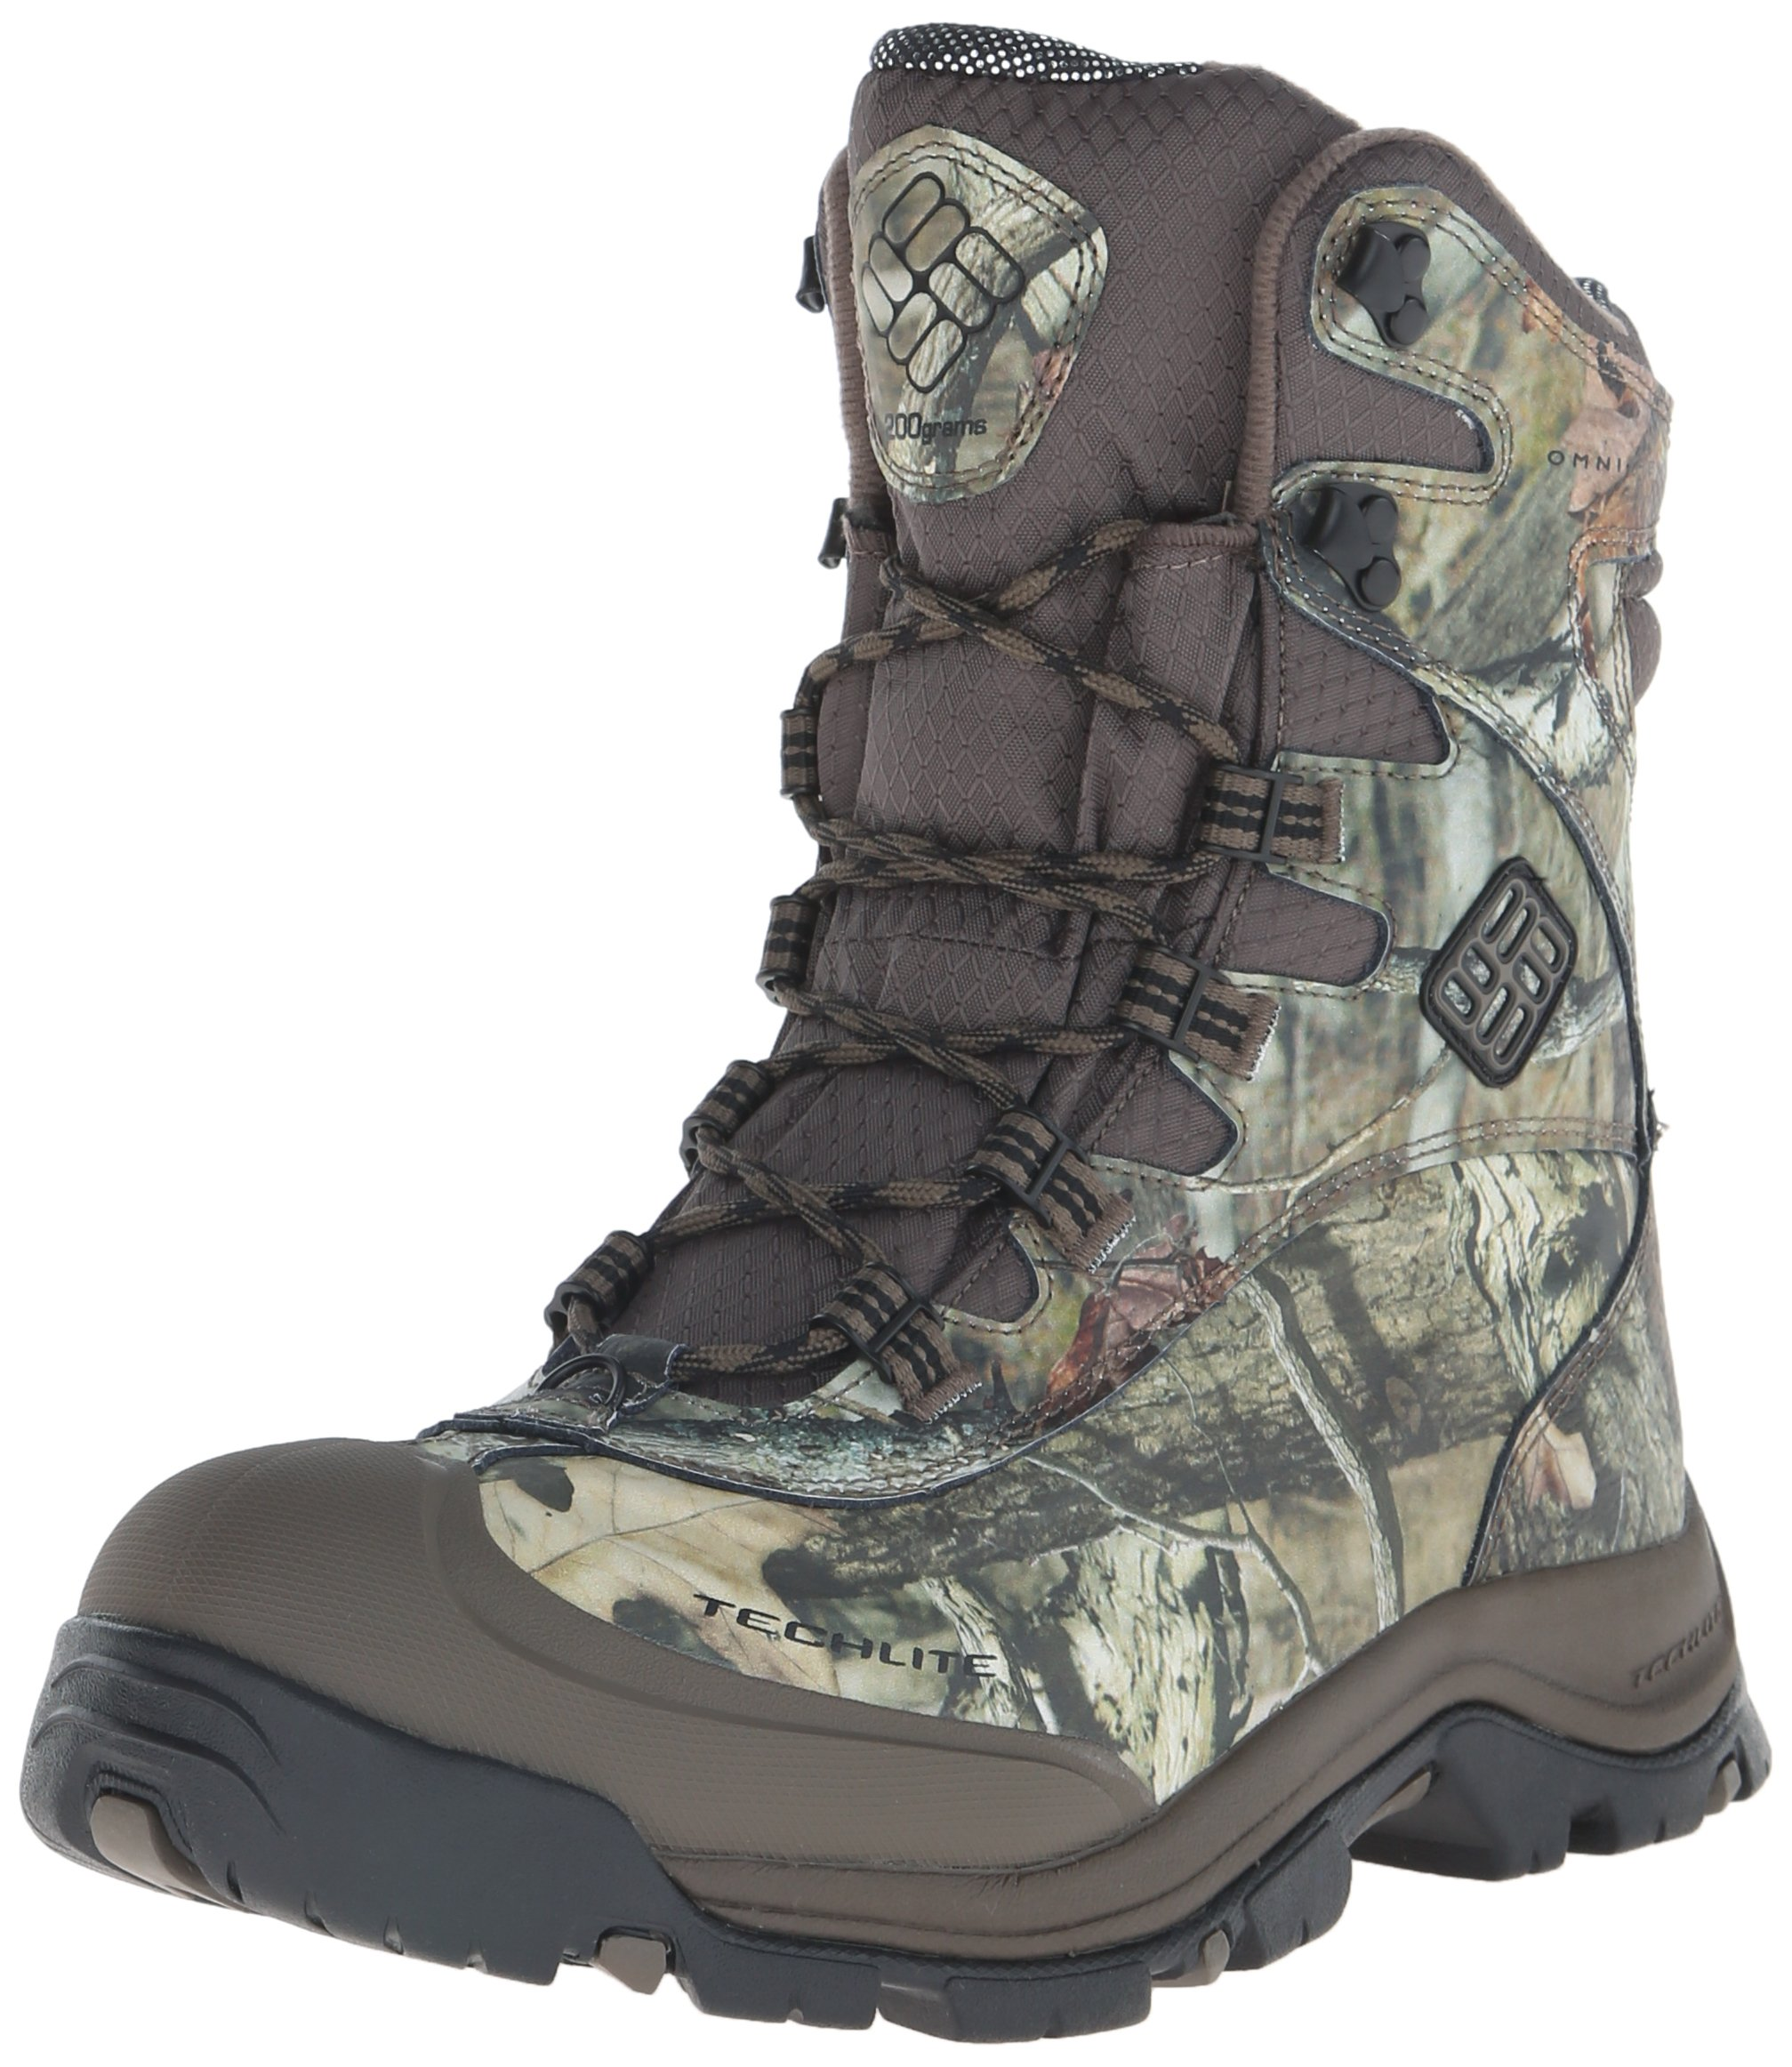 Columbia Men's Bugaboot Plus III Omni-Heat Camo Snow Boot, Mossy Oak, Black, 10 D US